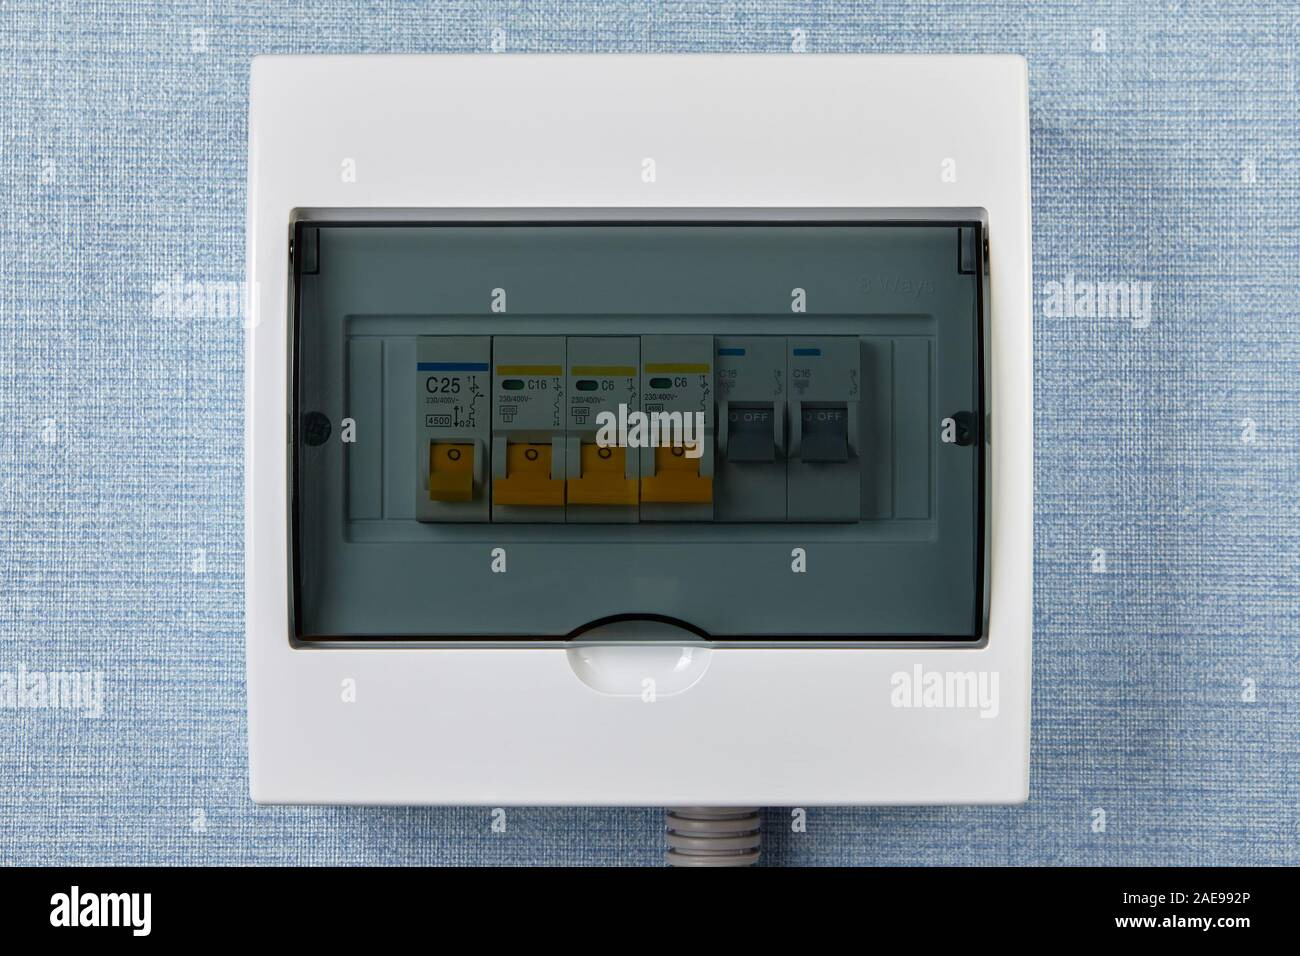 Consumer Unit With Automatic Fuses Or Switchboard With Circuit Breakers Electrical Panel Of Home Distribution Board Household Electric Wiring Fus Stock Photo Alamy